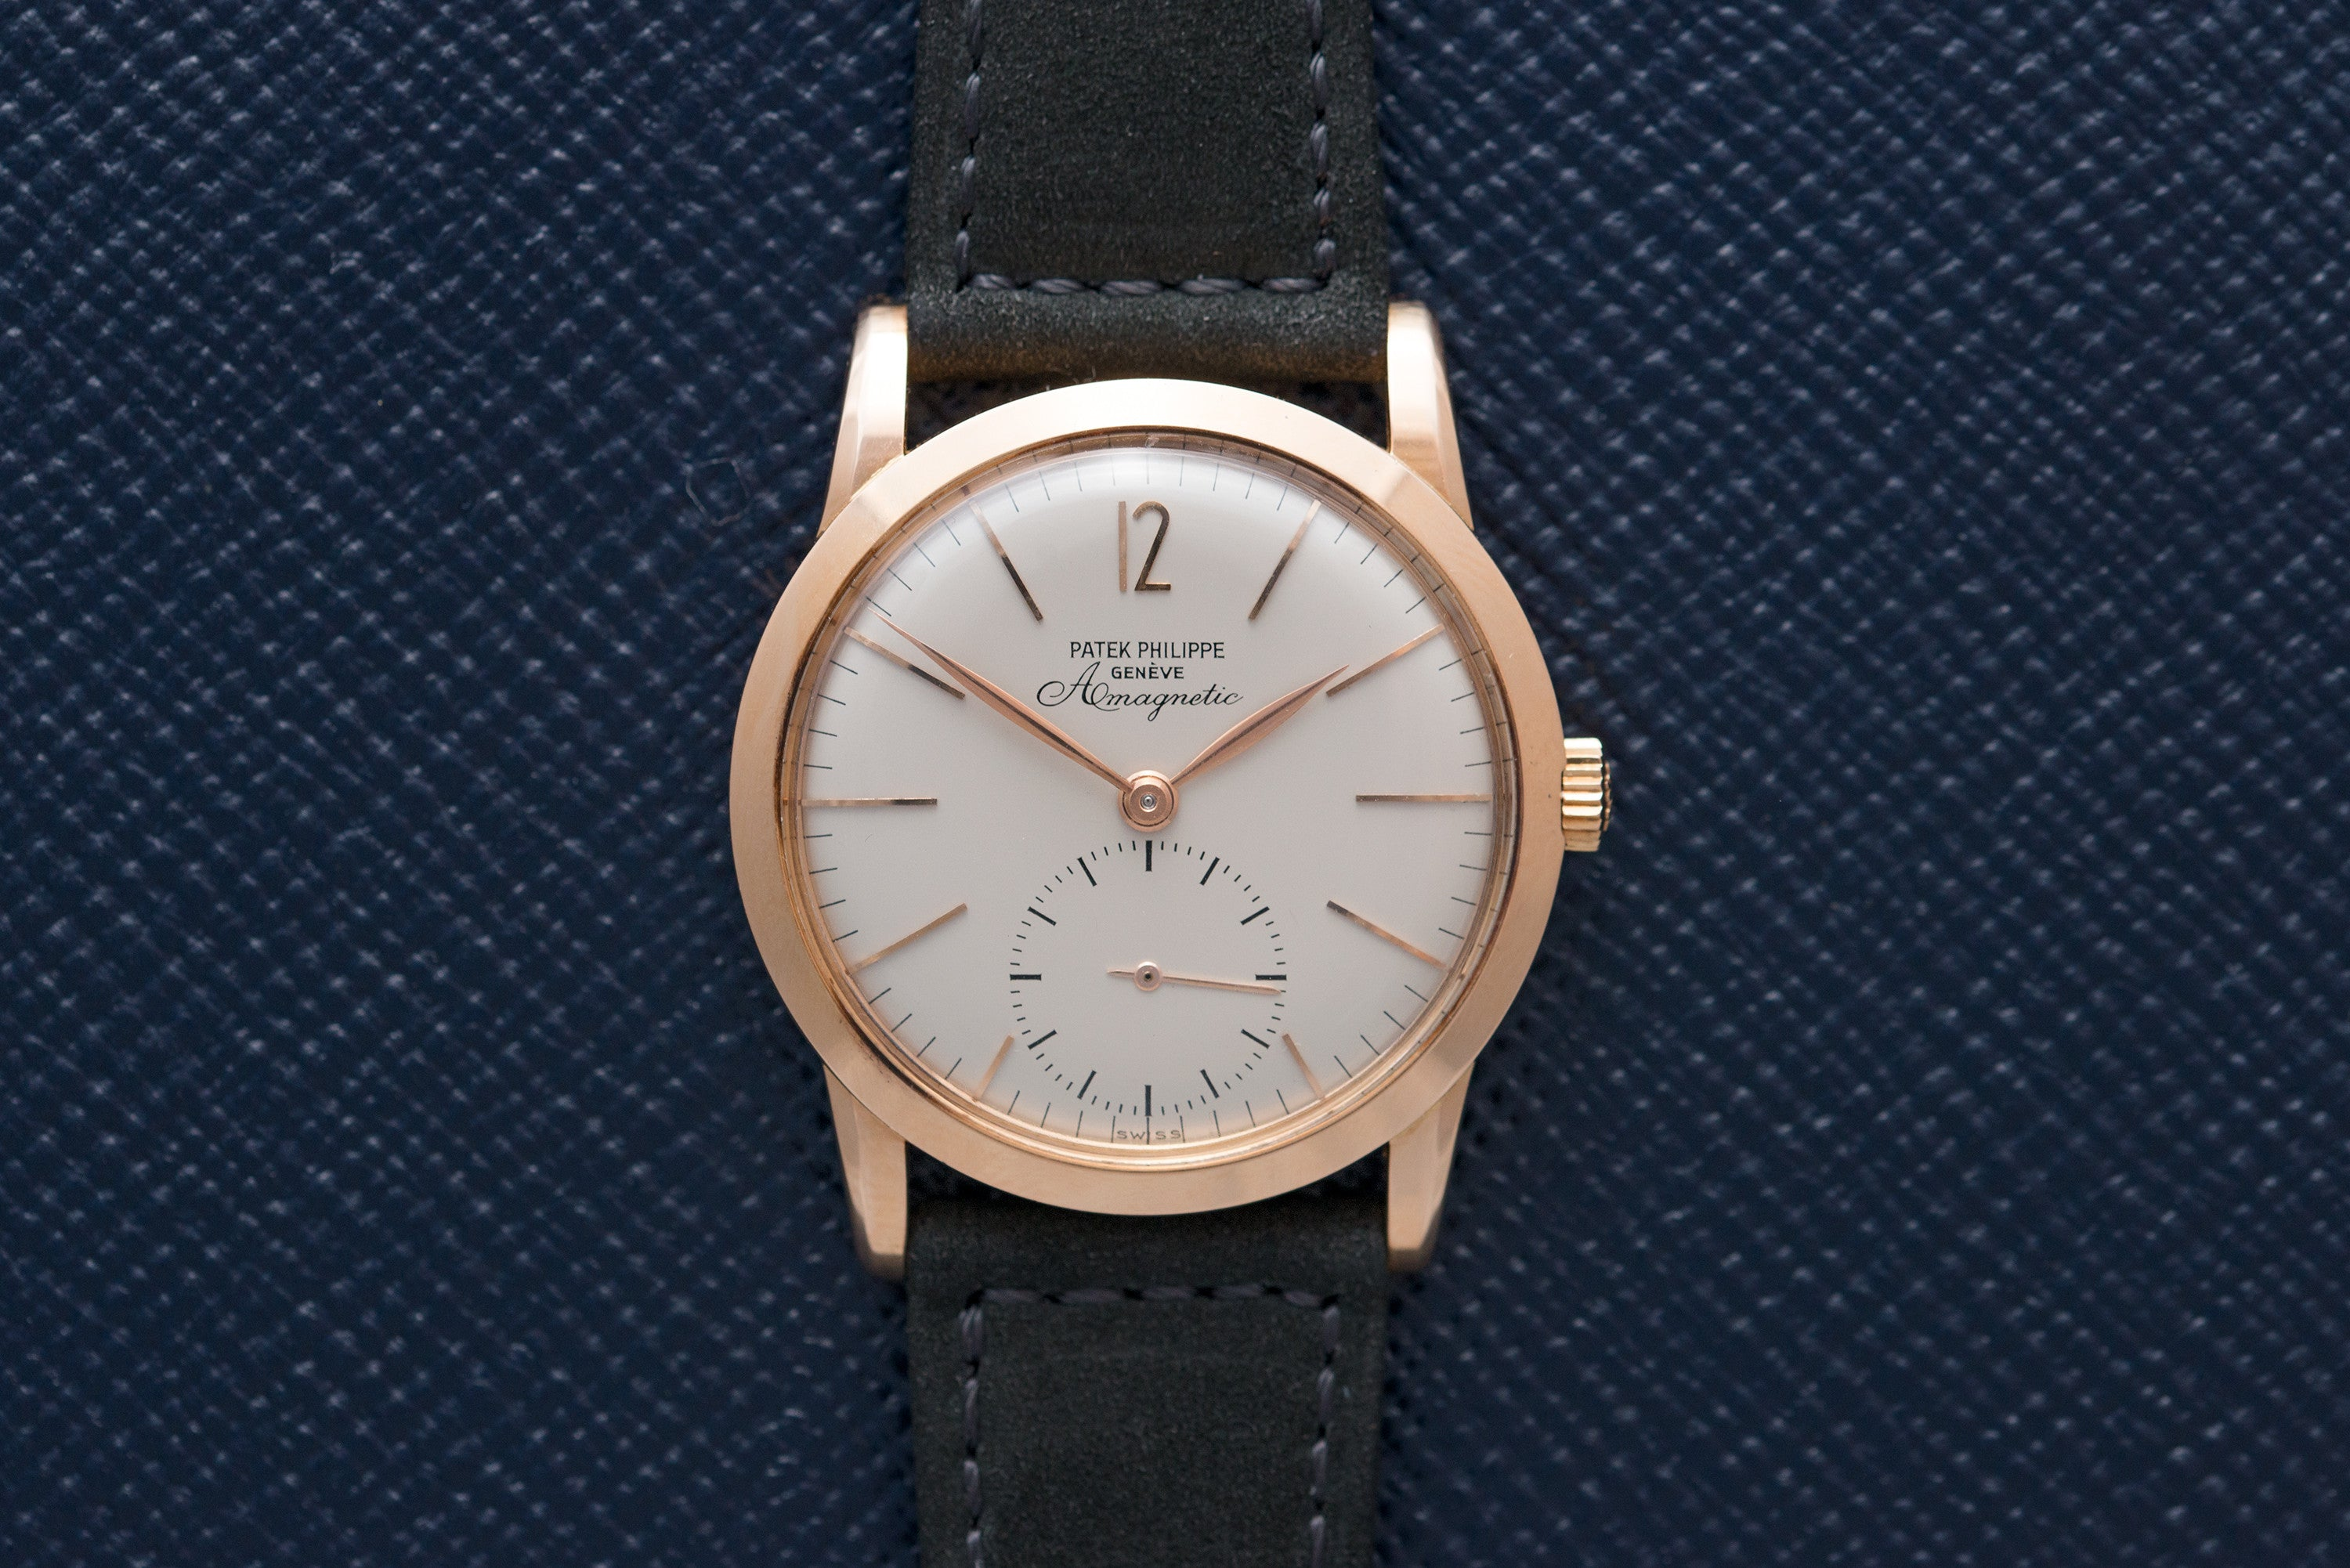 Patek Philippe 2570/1 pink gold watch at A Collected Man